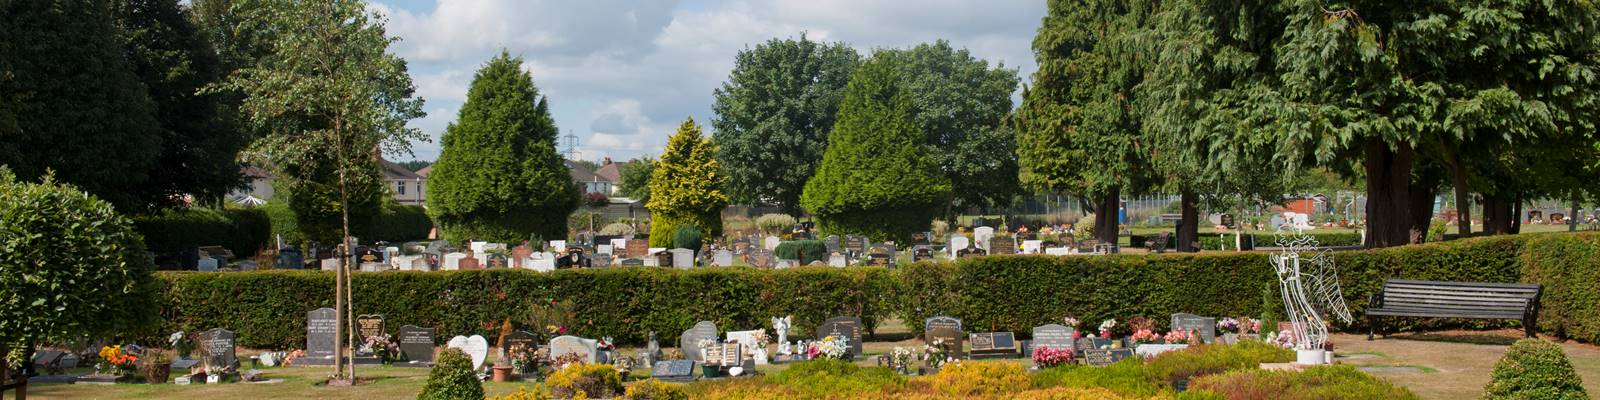 Eastleigh_Brookwood_Cemetery17.jpg